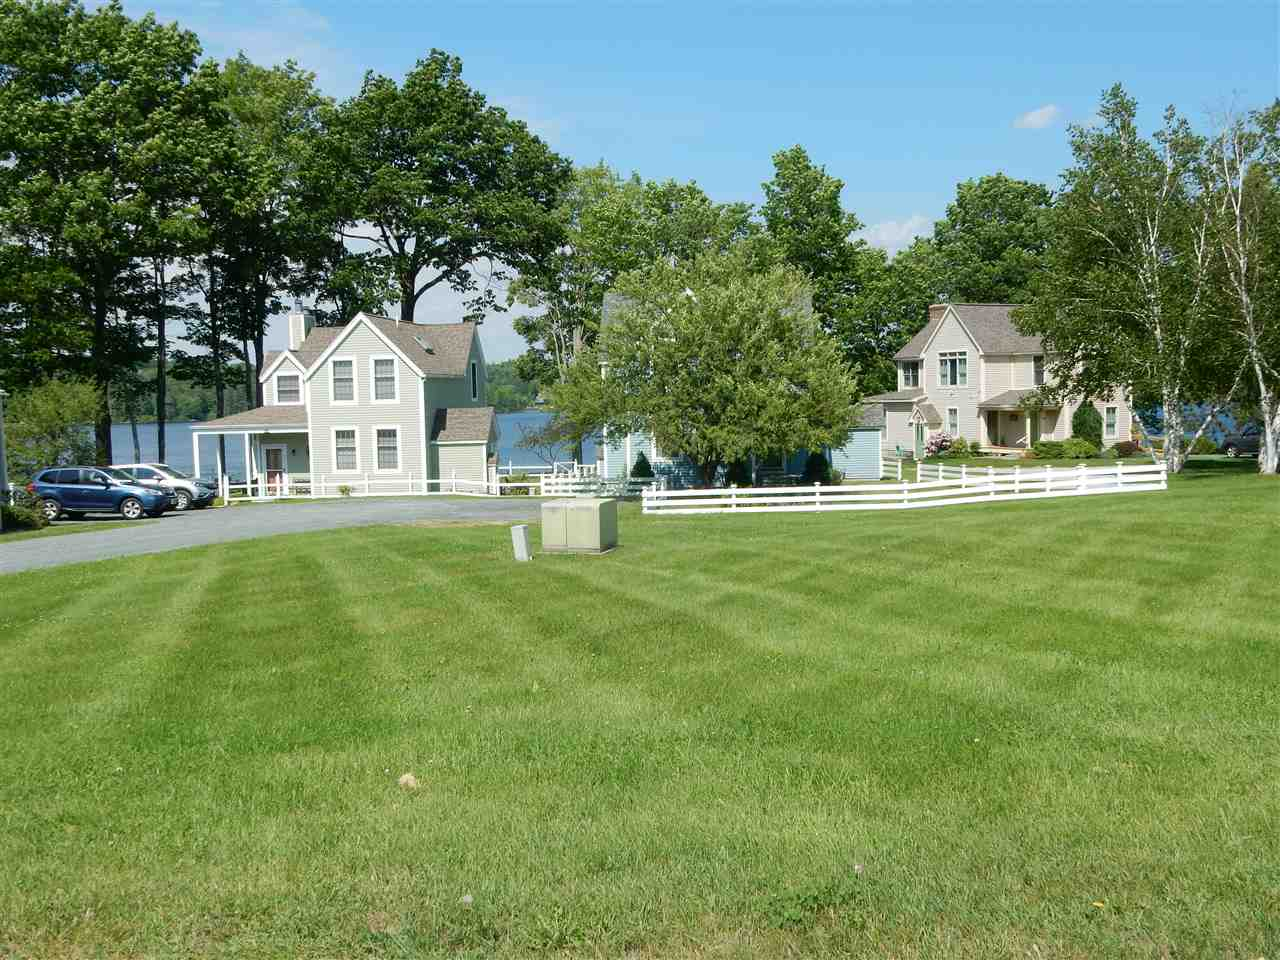 ENFIELD NHLAND  for sale $$75,000 | 0.1 Acres  | Price Per Acre $0  | Total Lots 2